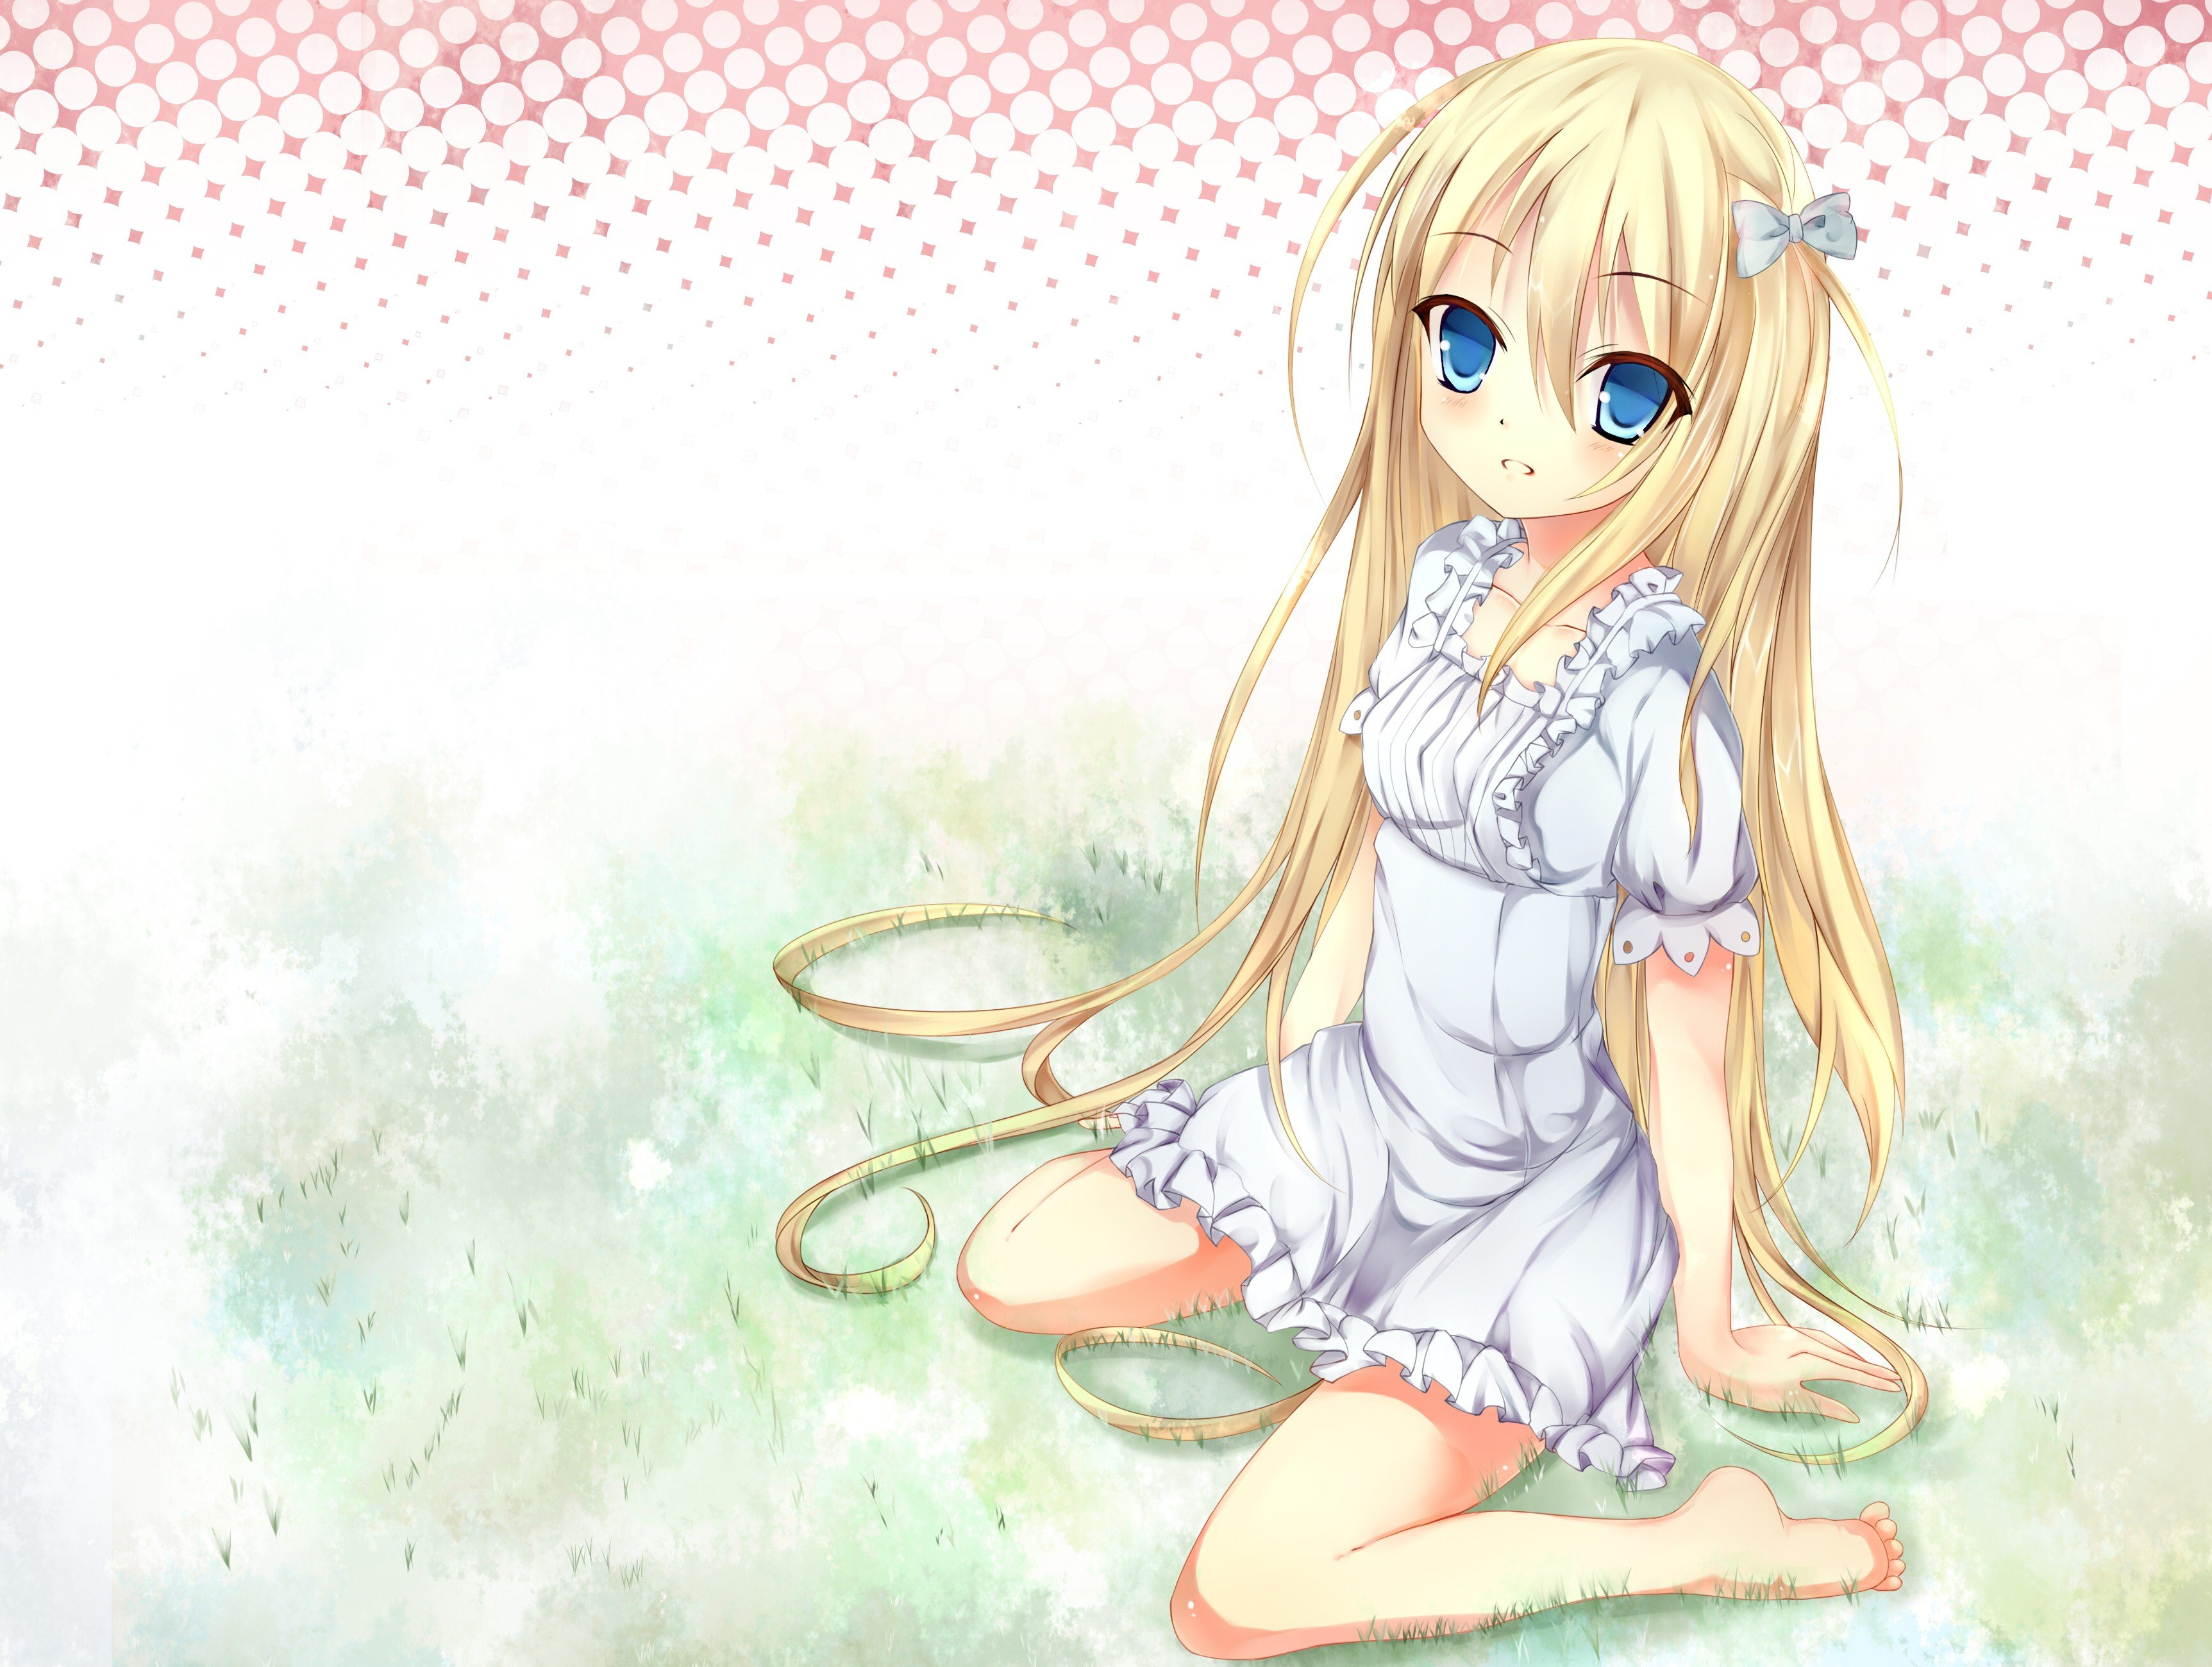 Anime girl with blonde hair and blue eyes